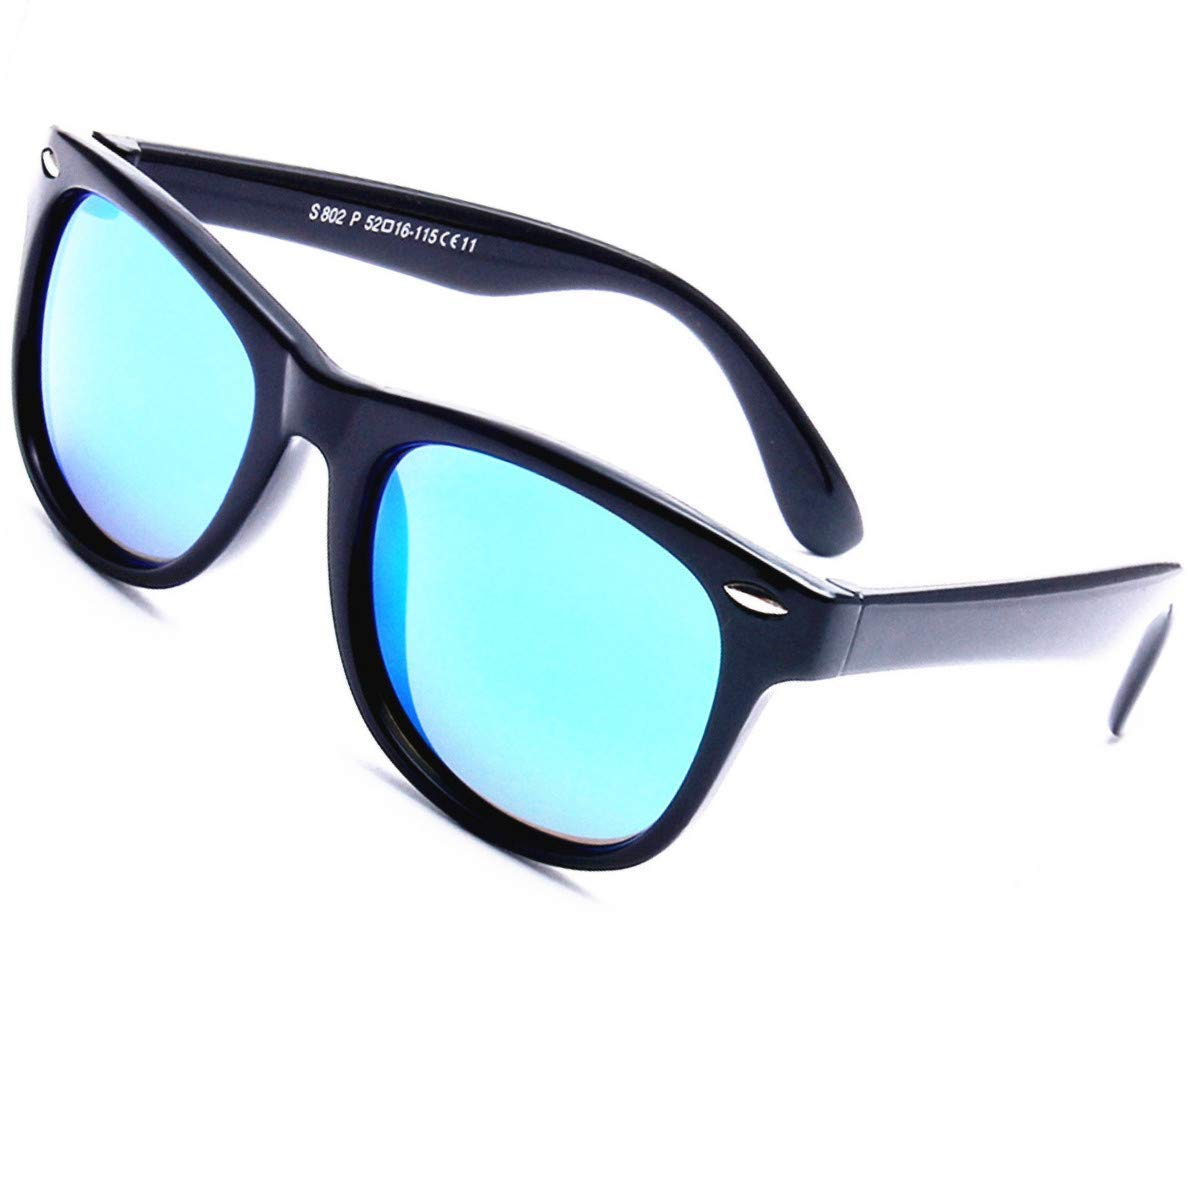 baceafe0fb Get Quotations · Kids Sunglasses For Kids Polarized Sunglasses Girls  Children Youth Boys Age 3-10 Mirrored Lens